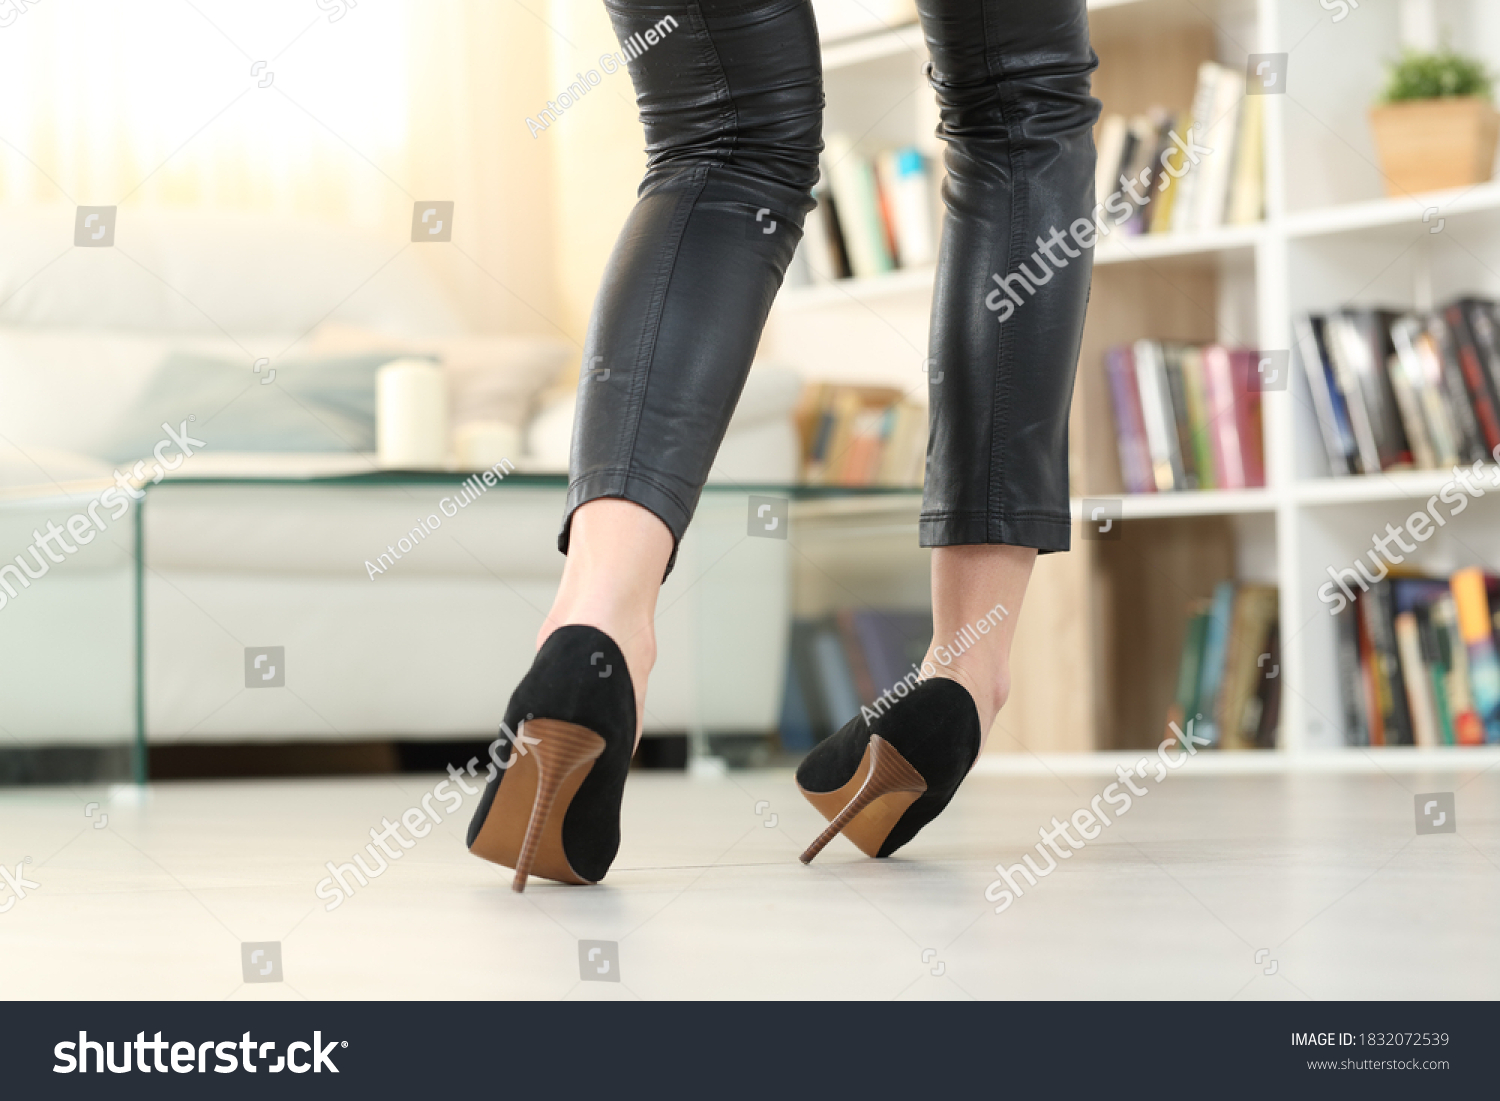 Back view of a Woman legs with high heels walking and sprain ankle #1832072539